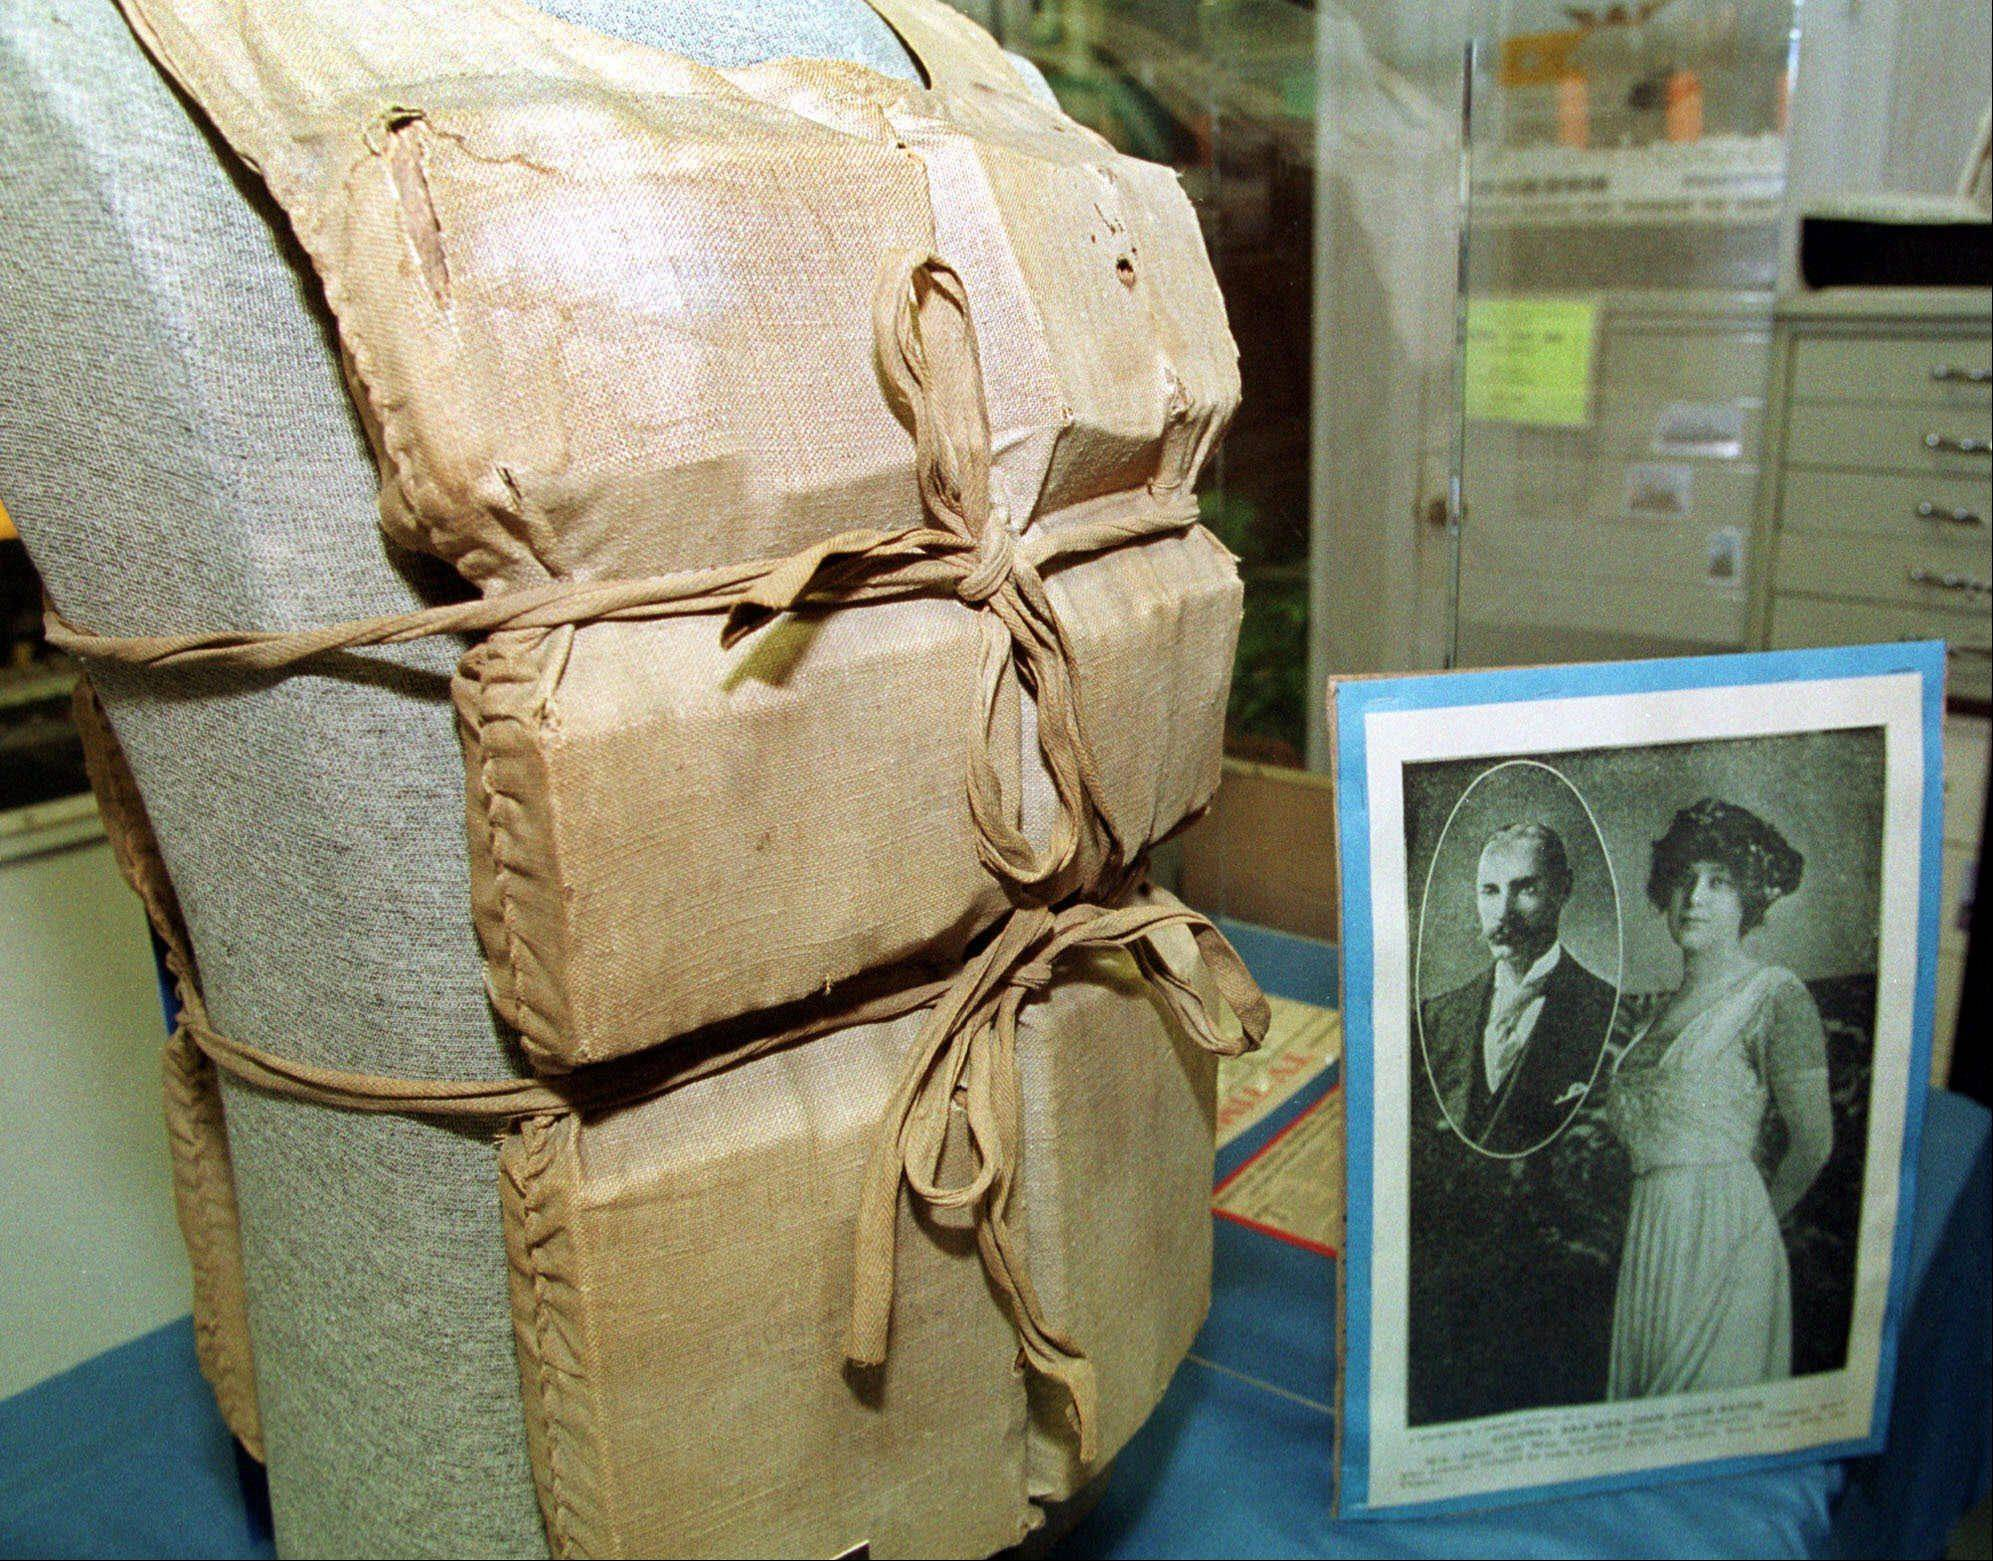 This Titanic life vest -- worn by Madeline Astor, wife of John Jacob Astor IV -- is seen on display at the Titanic Museum in Springfield, Mass. Astor, who was 18 at the time, is shown with her husband, 48 at the time, in the photograph at right. She survived the sinking of the Titanic aboard one of the lifeboats.